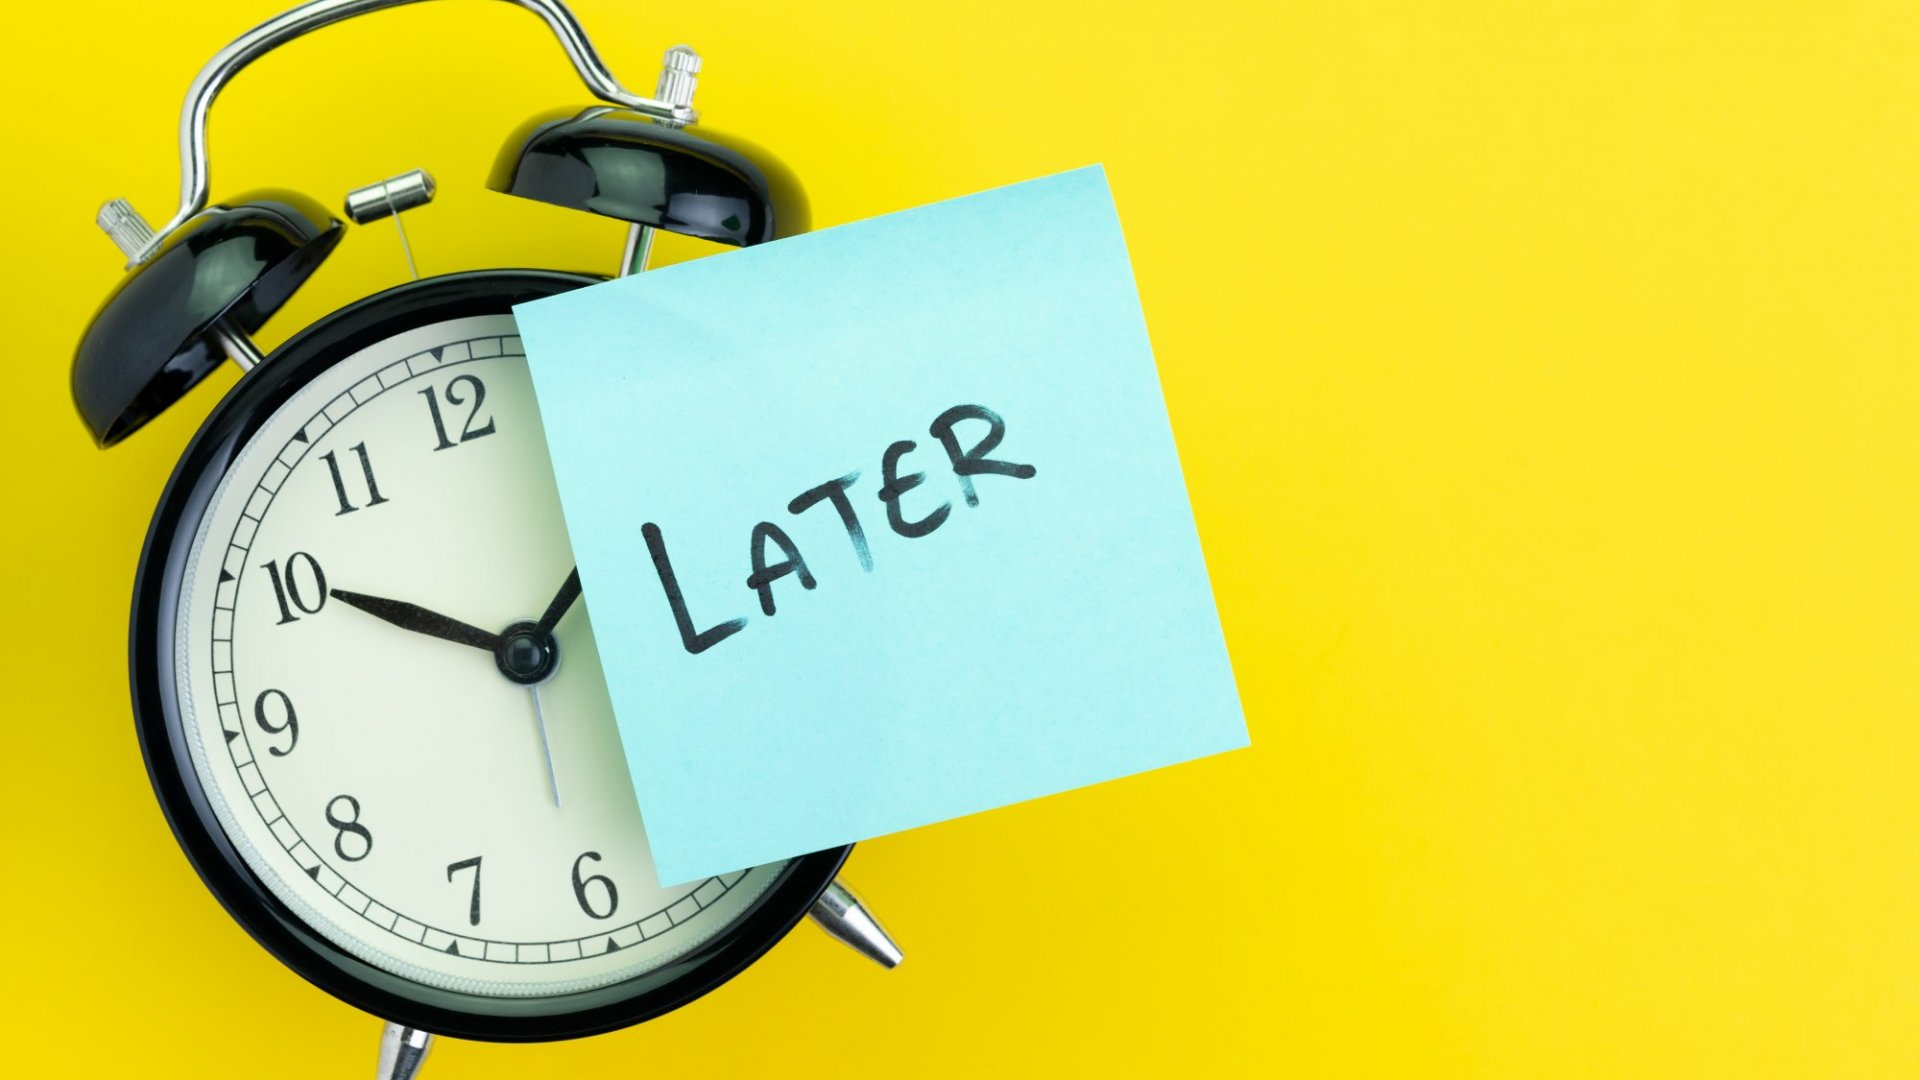 Don't Waste Time at Work: How to Overcome 7 Productivity Killers